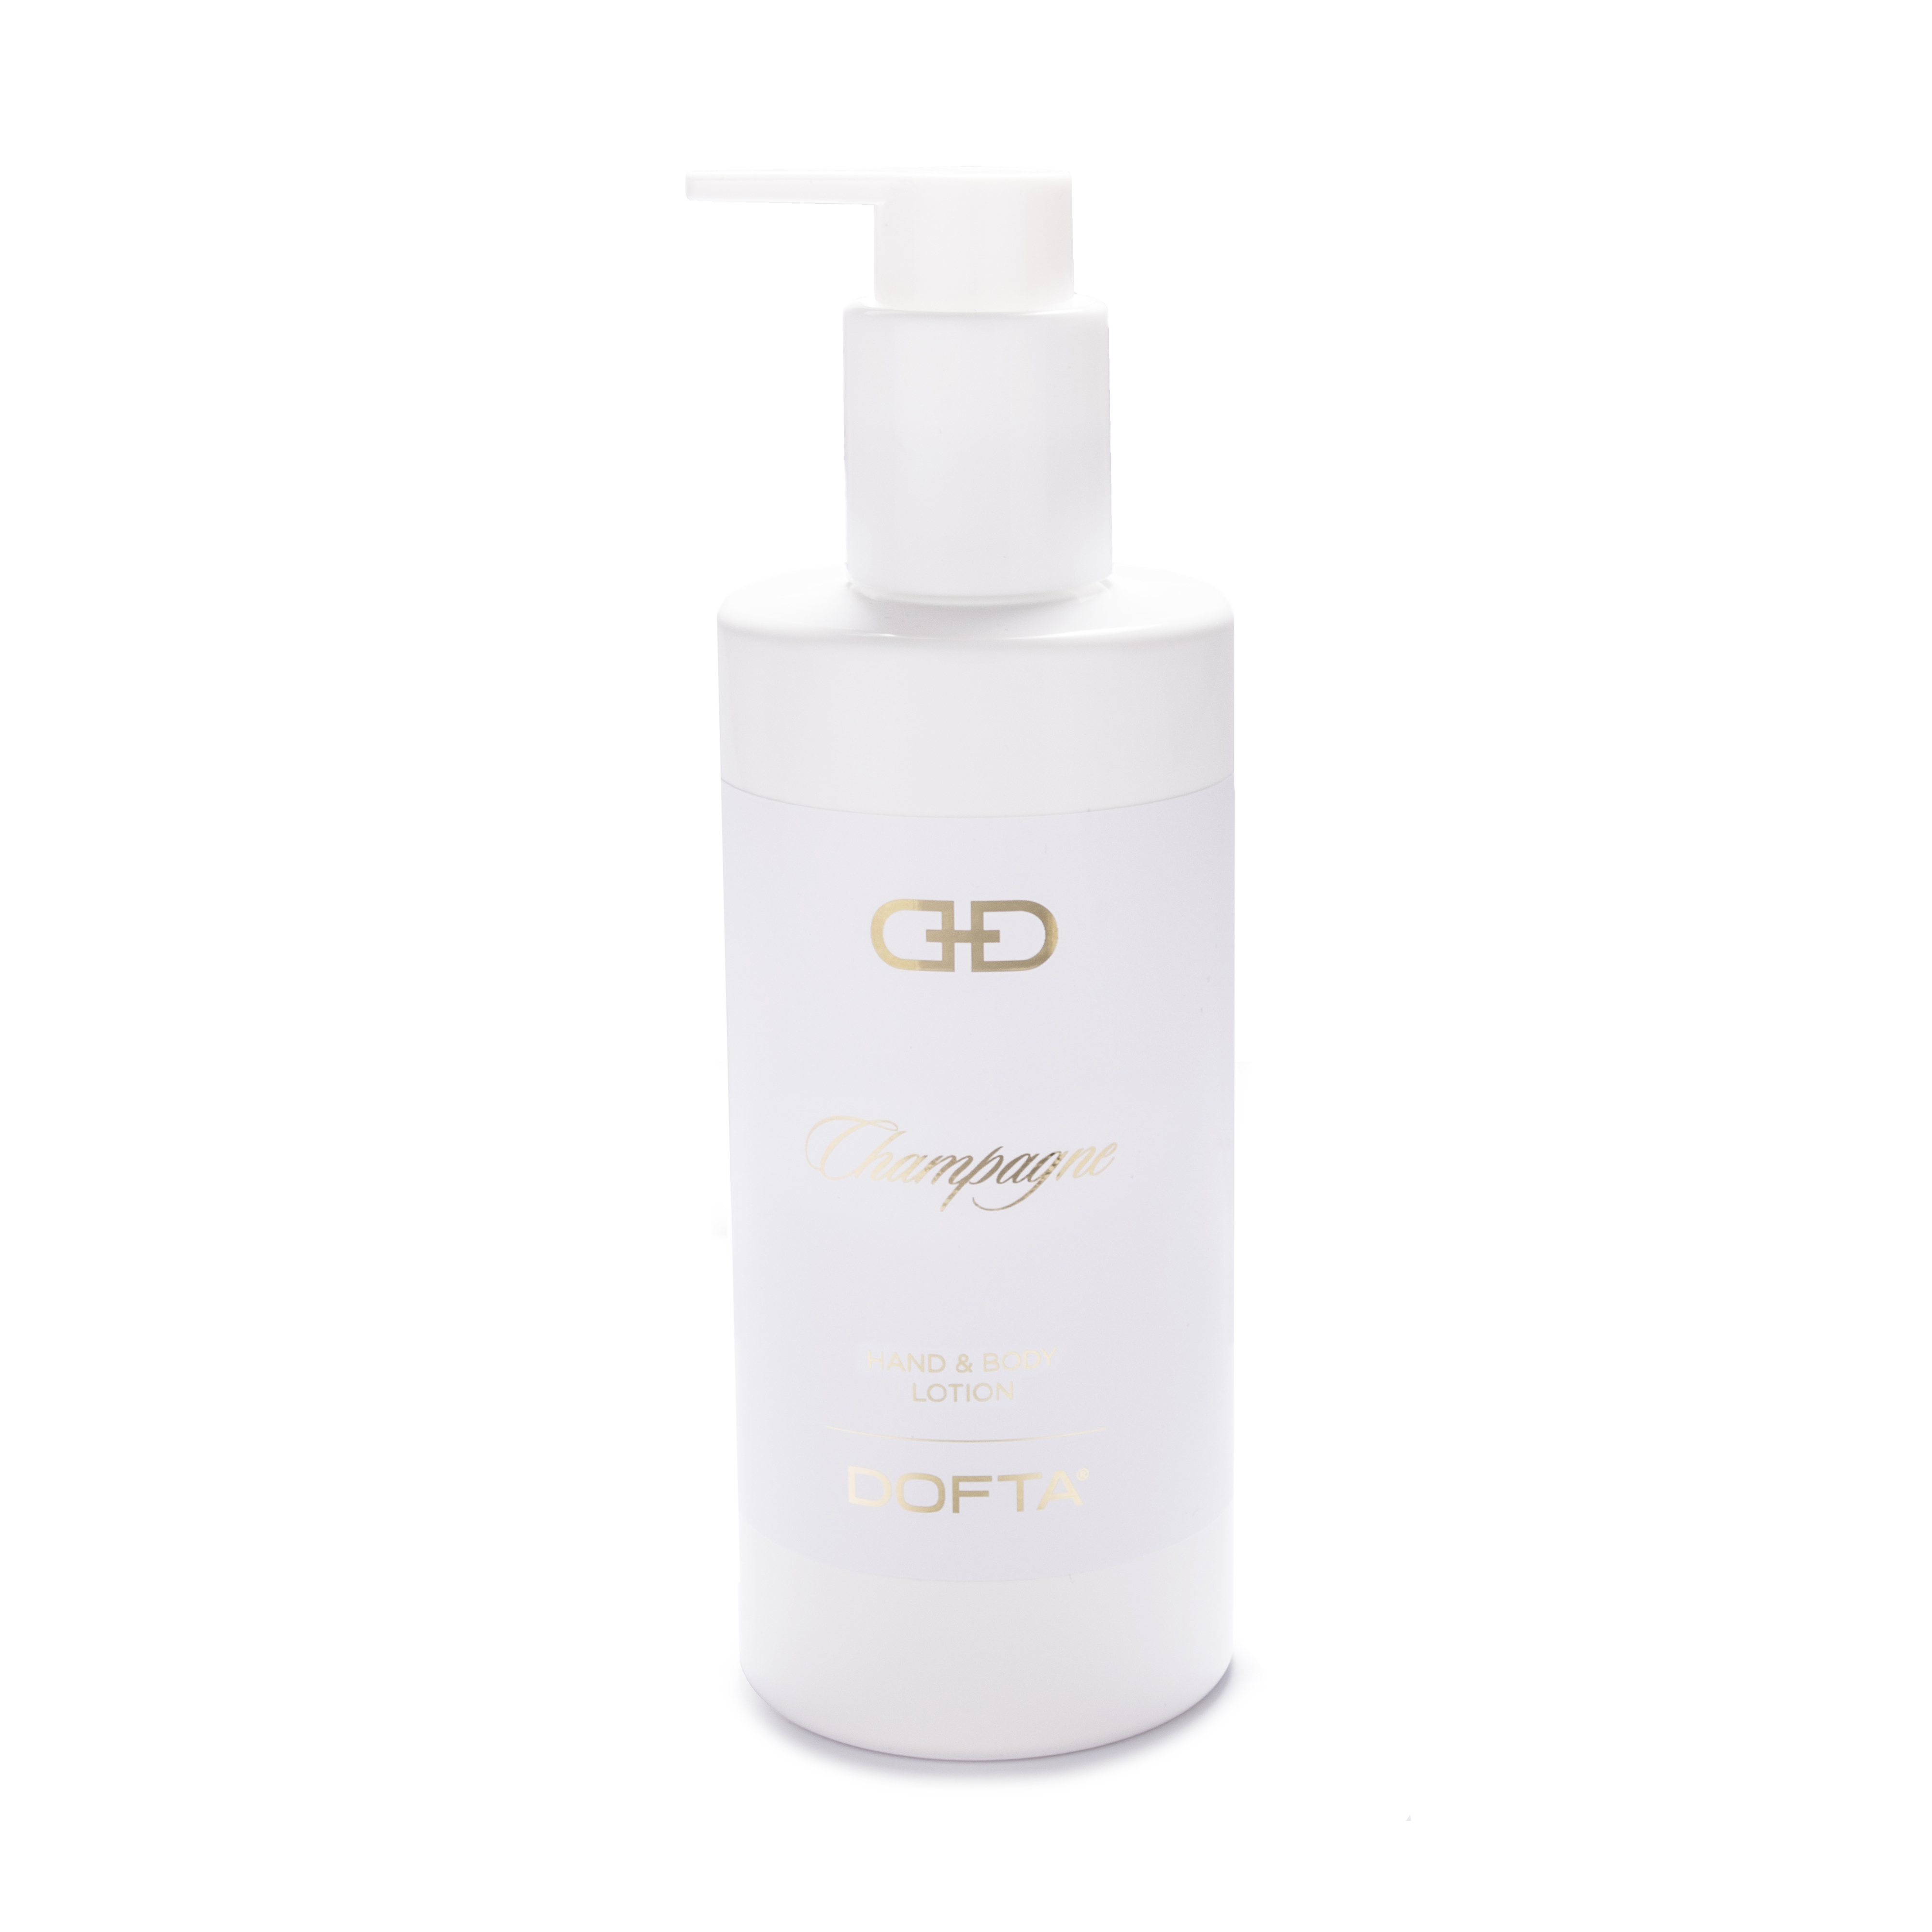 Champagne - White & Gold Hand & Body Lotion